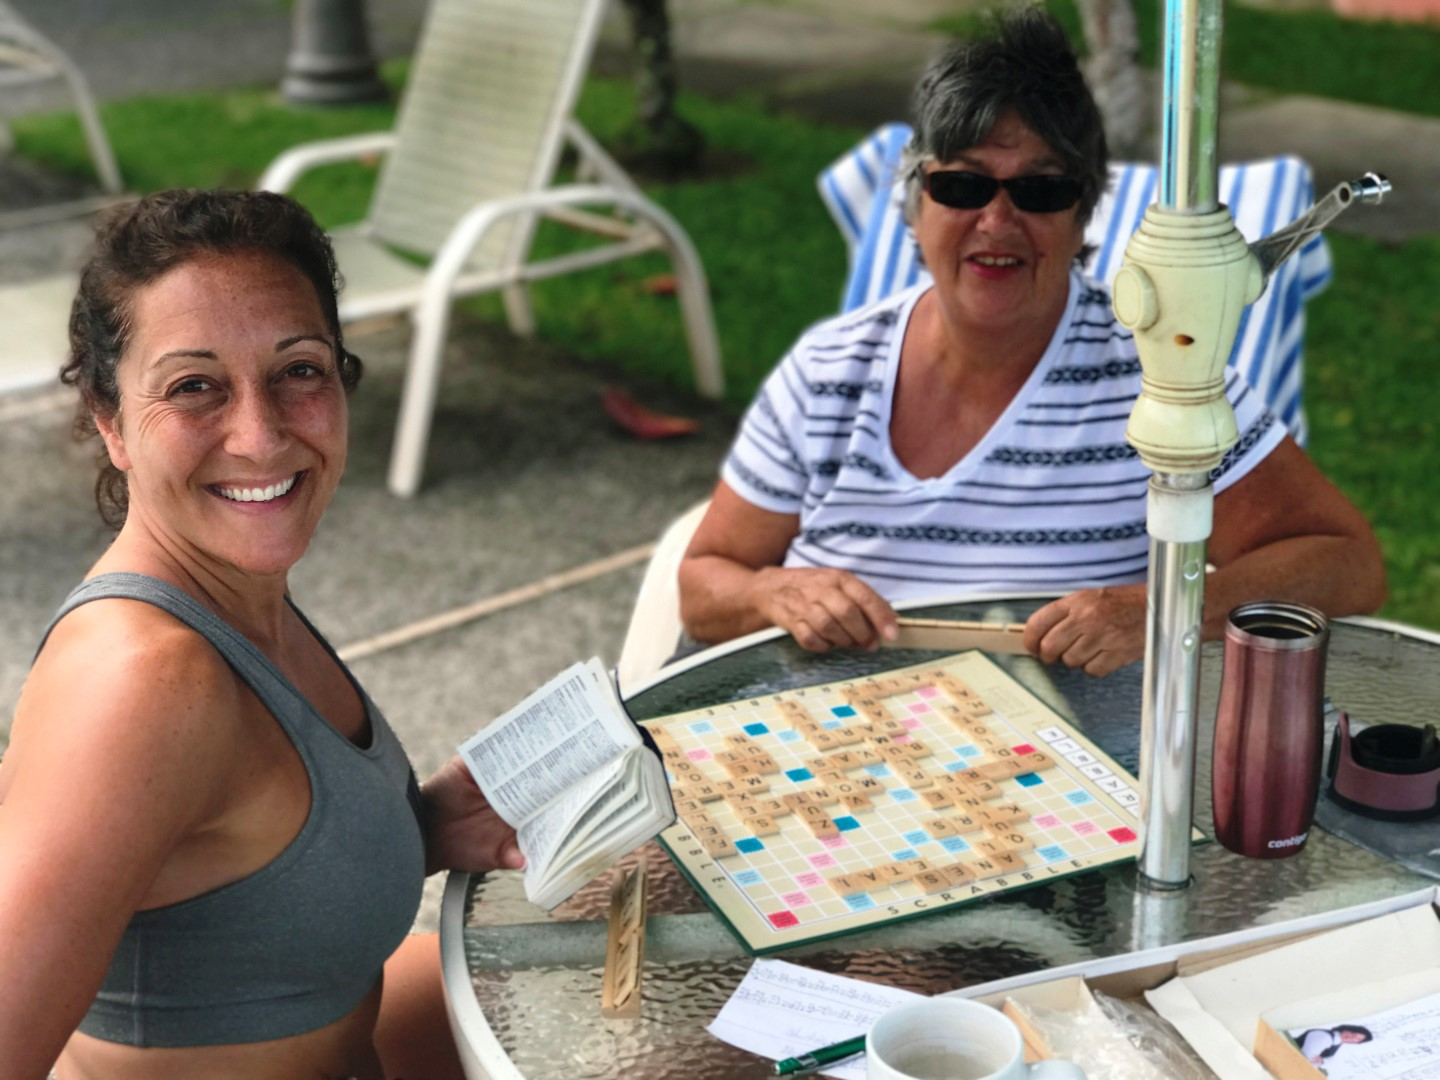 Try scrabble, a crossword puzzle, or a friendly game of cards with friends to break up the day and have a little fun.